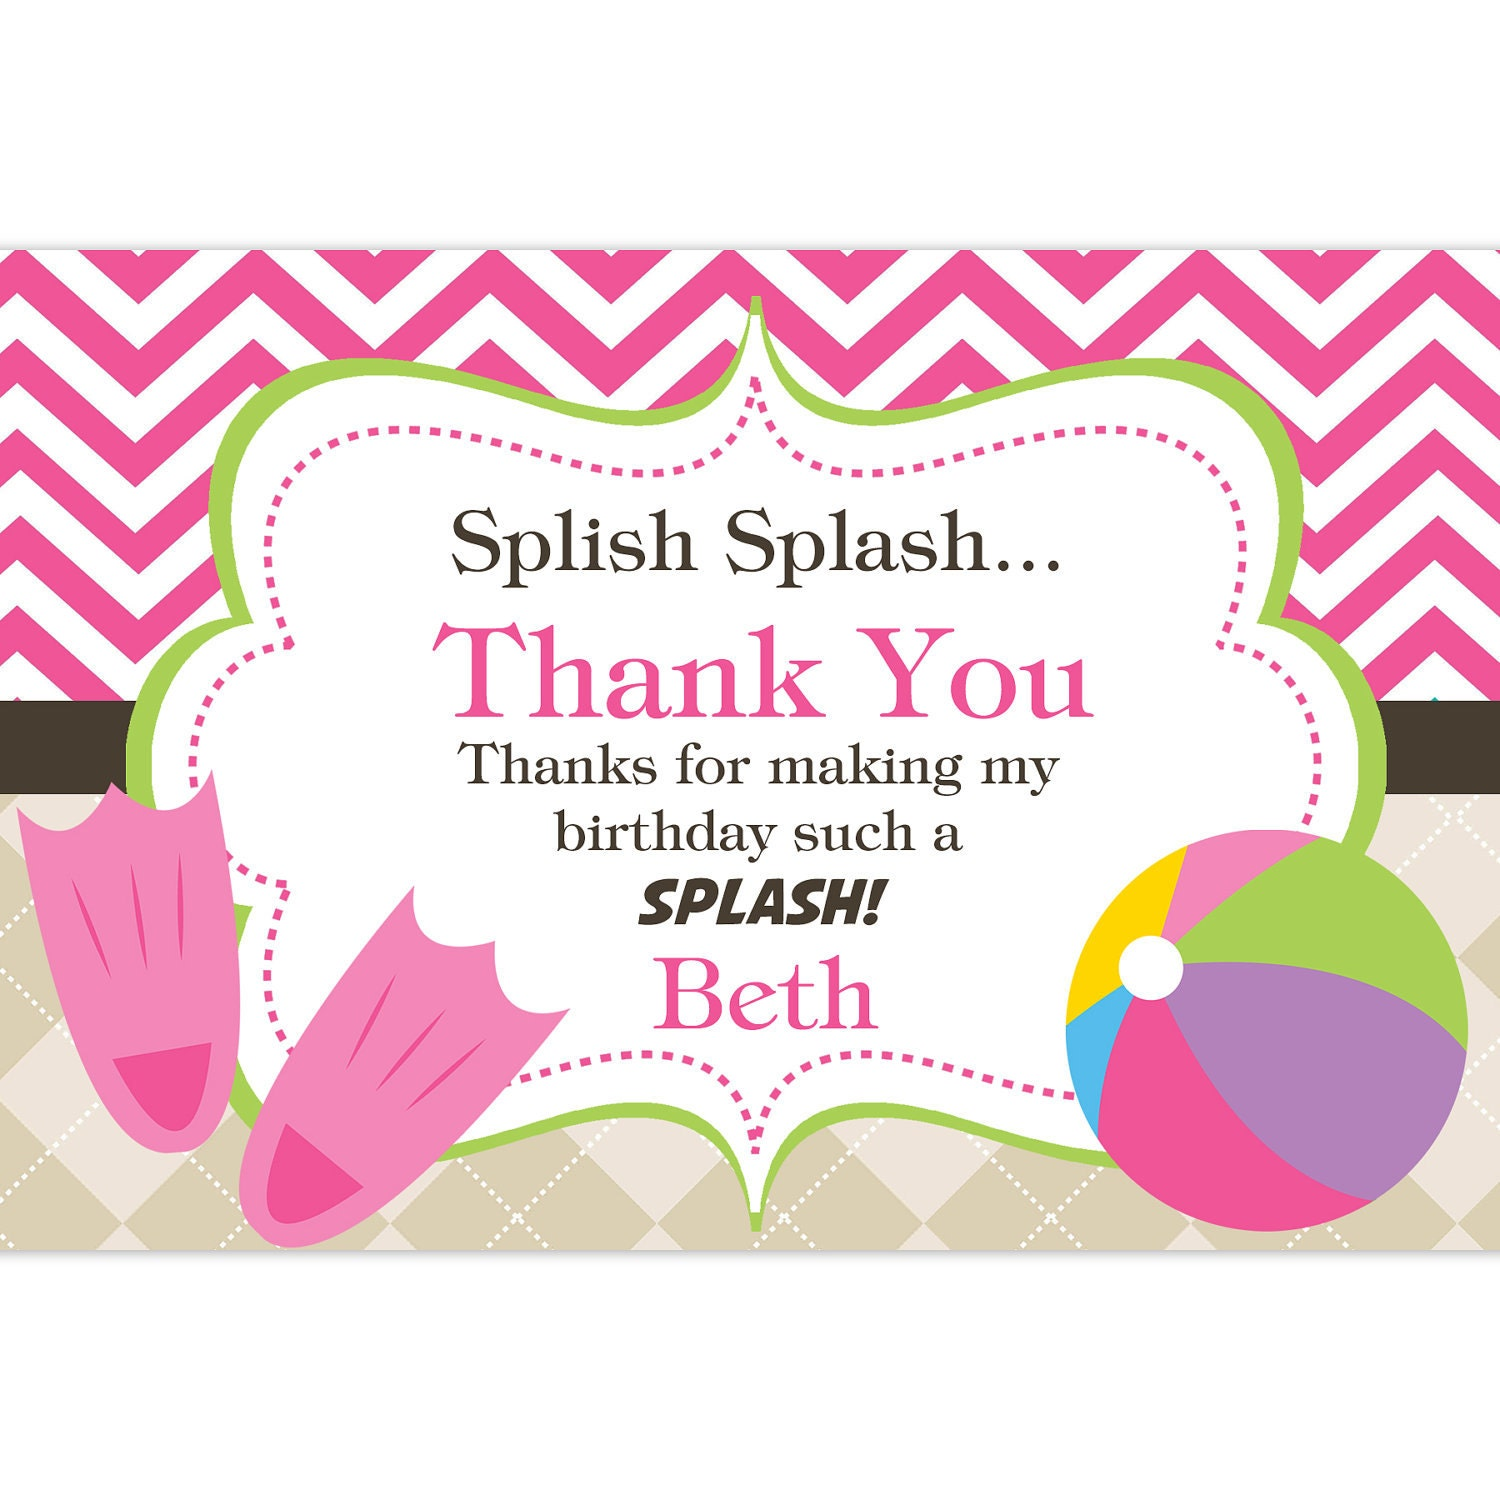 Pool Party Thank You Card Hot Pink Chevron And Tan Argyle